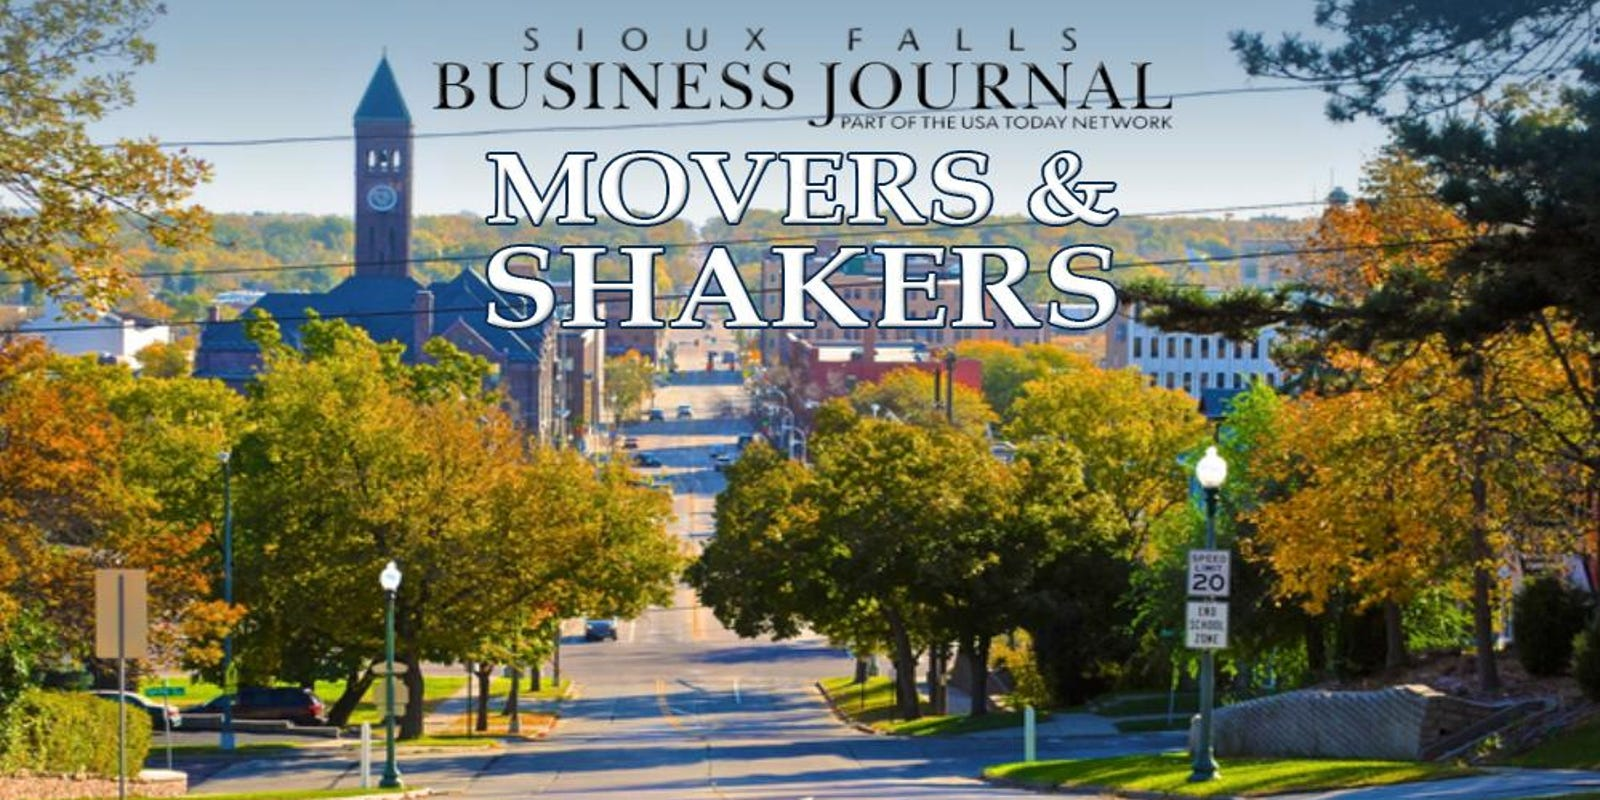 Sioux Falls Movers & Shakers: Sept  12